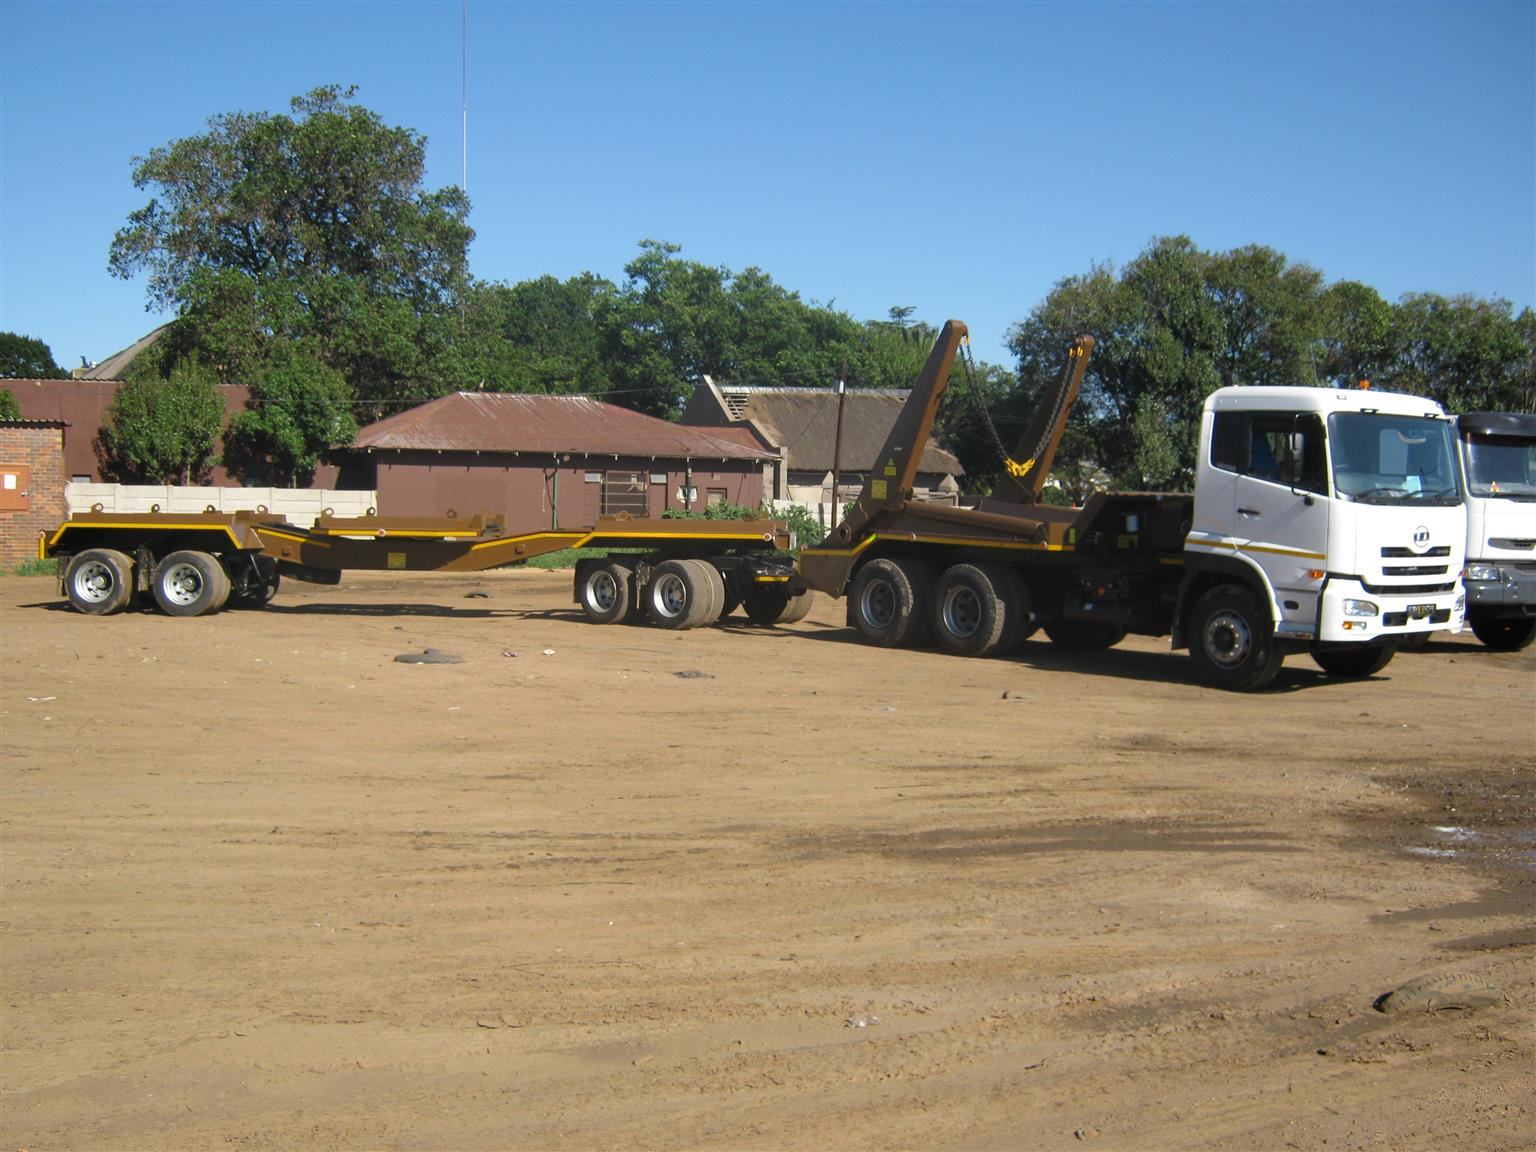 Mint skip trailers. we make them really strong and well.